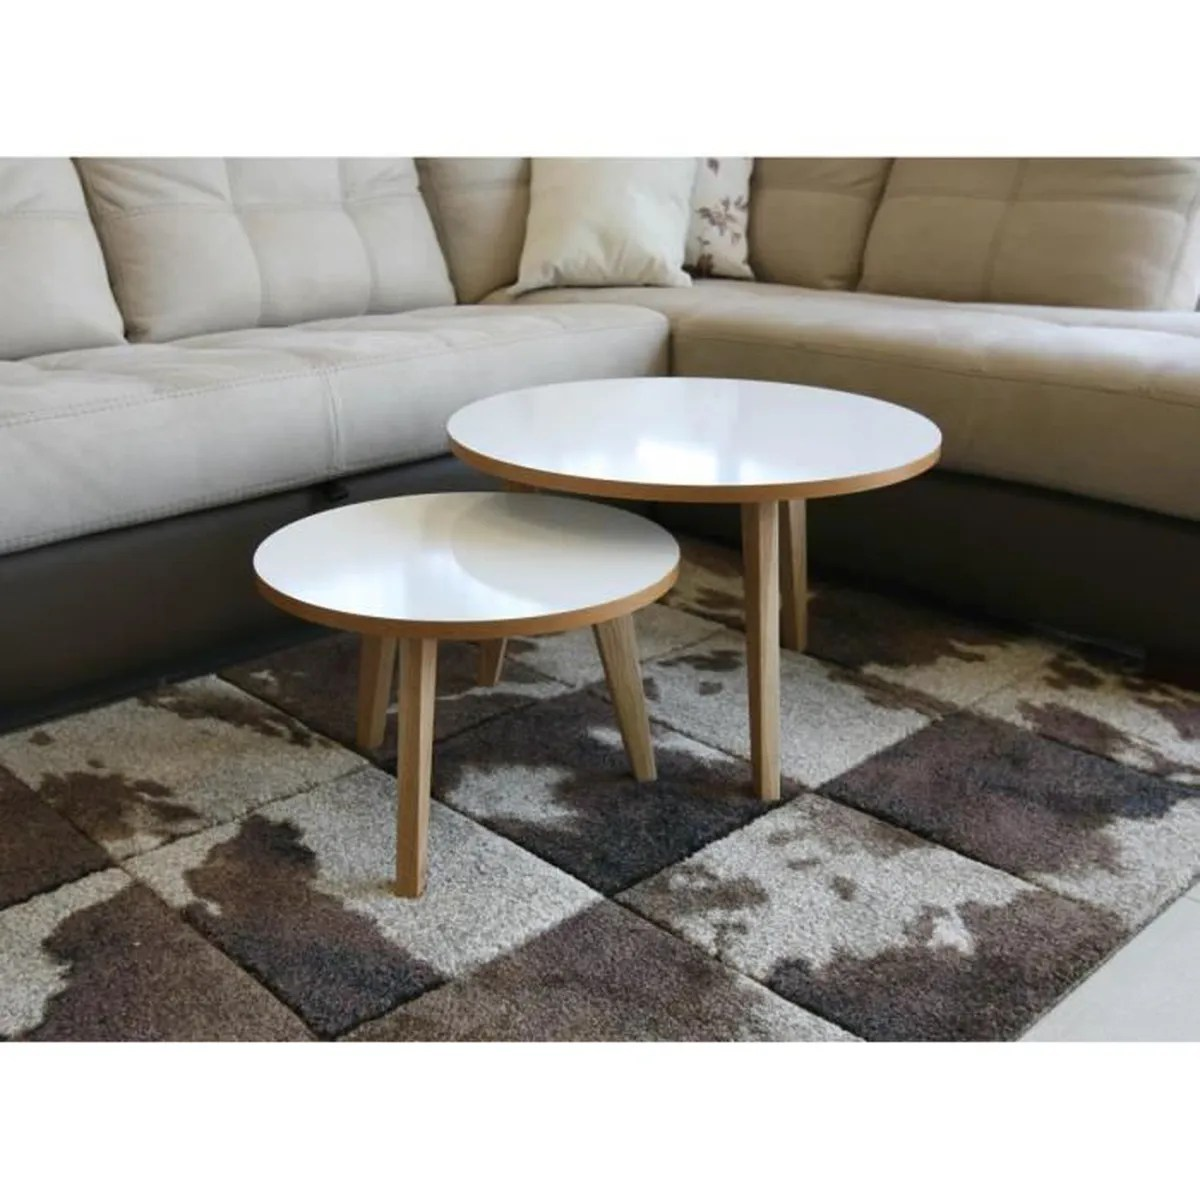 Table Salon Gigogne Table Basse Gigogne Jimi Lot De 2 Design Scandinave